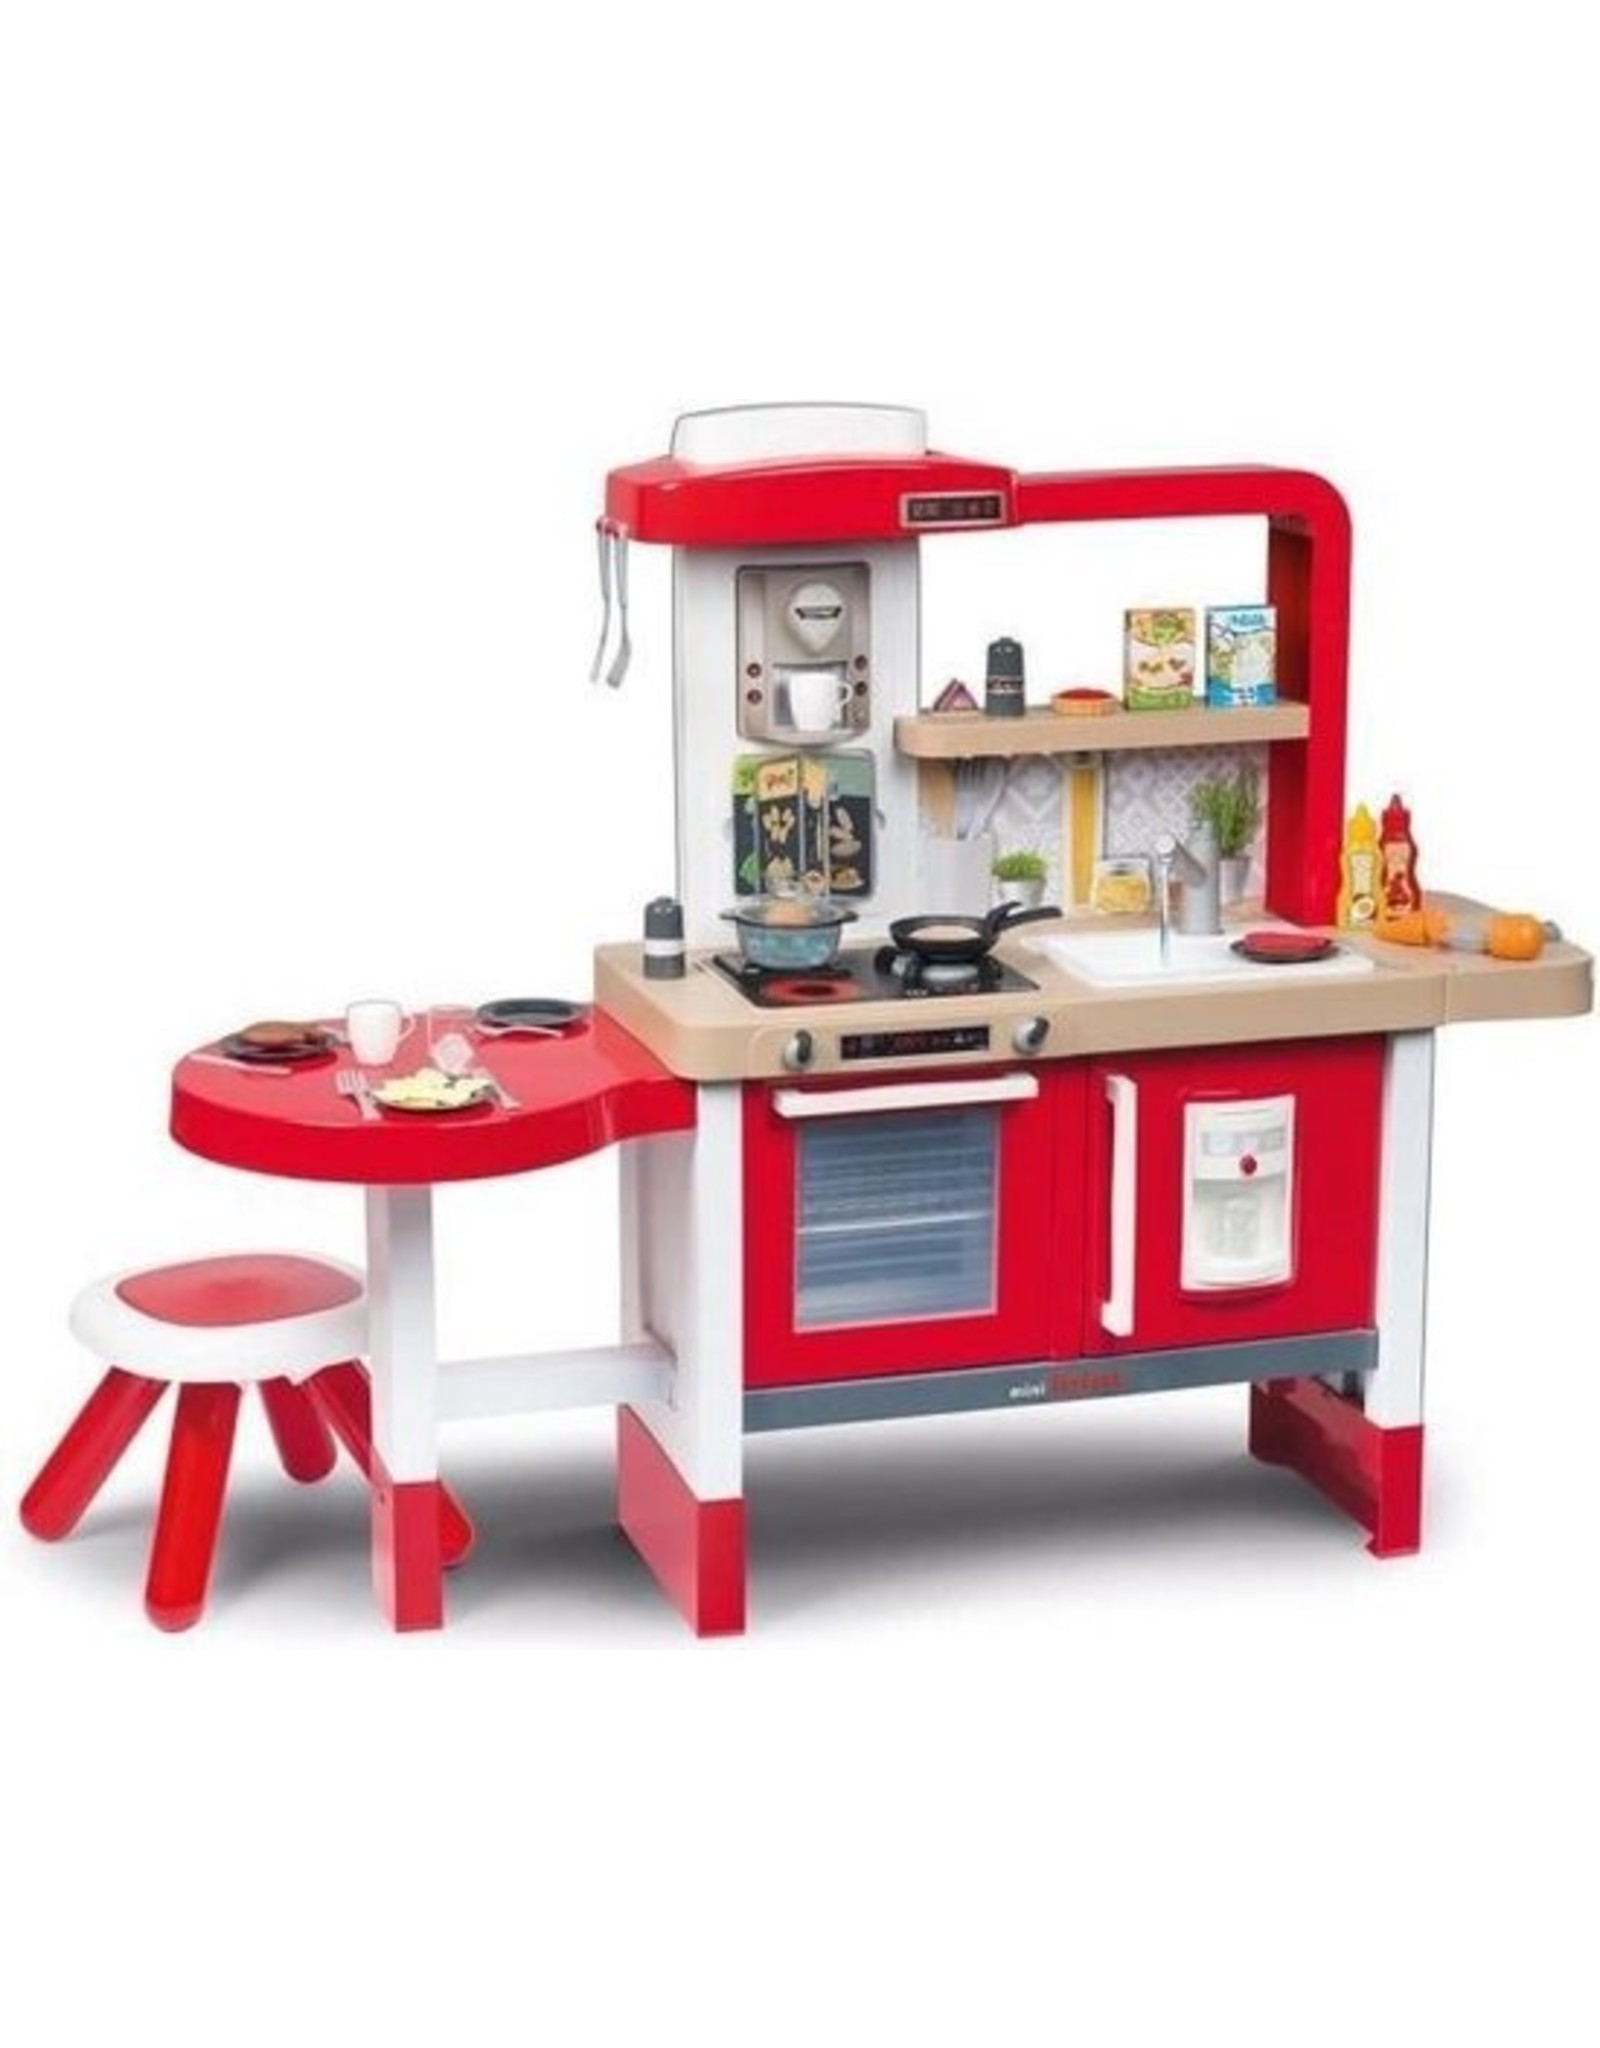 Smoby Tefal French Touch Bubble Küche Mit Wasserfunktion Smoby Tefal Grande Evolutionary Kitchen 31 - Roleplay Kitchen - Altoys - Altoys